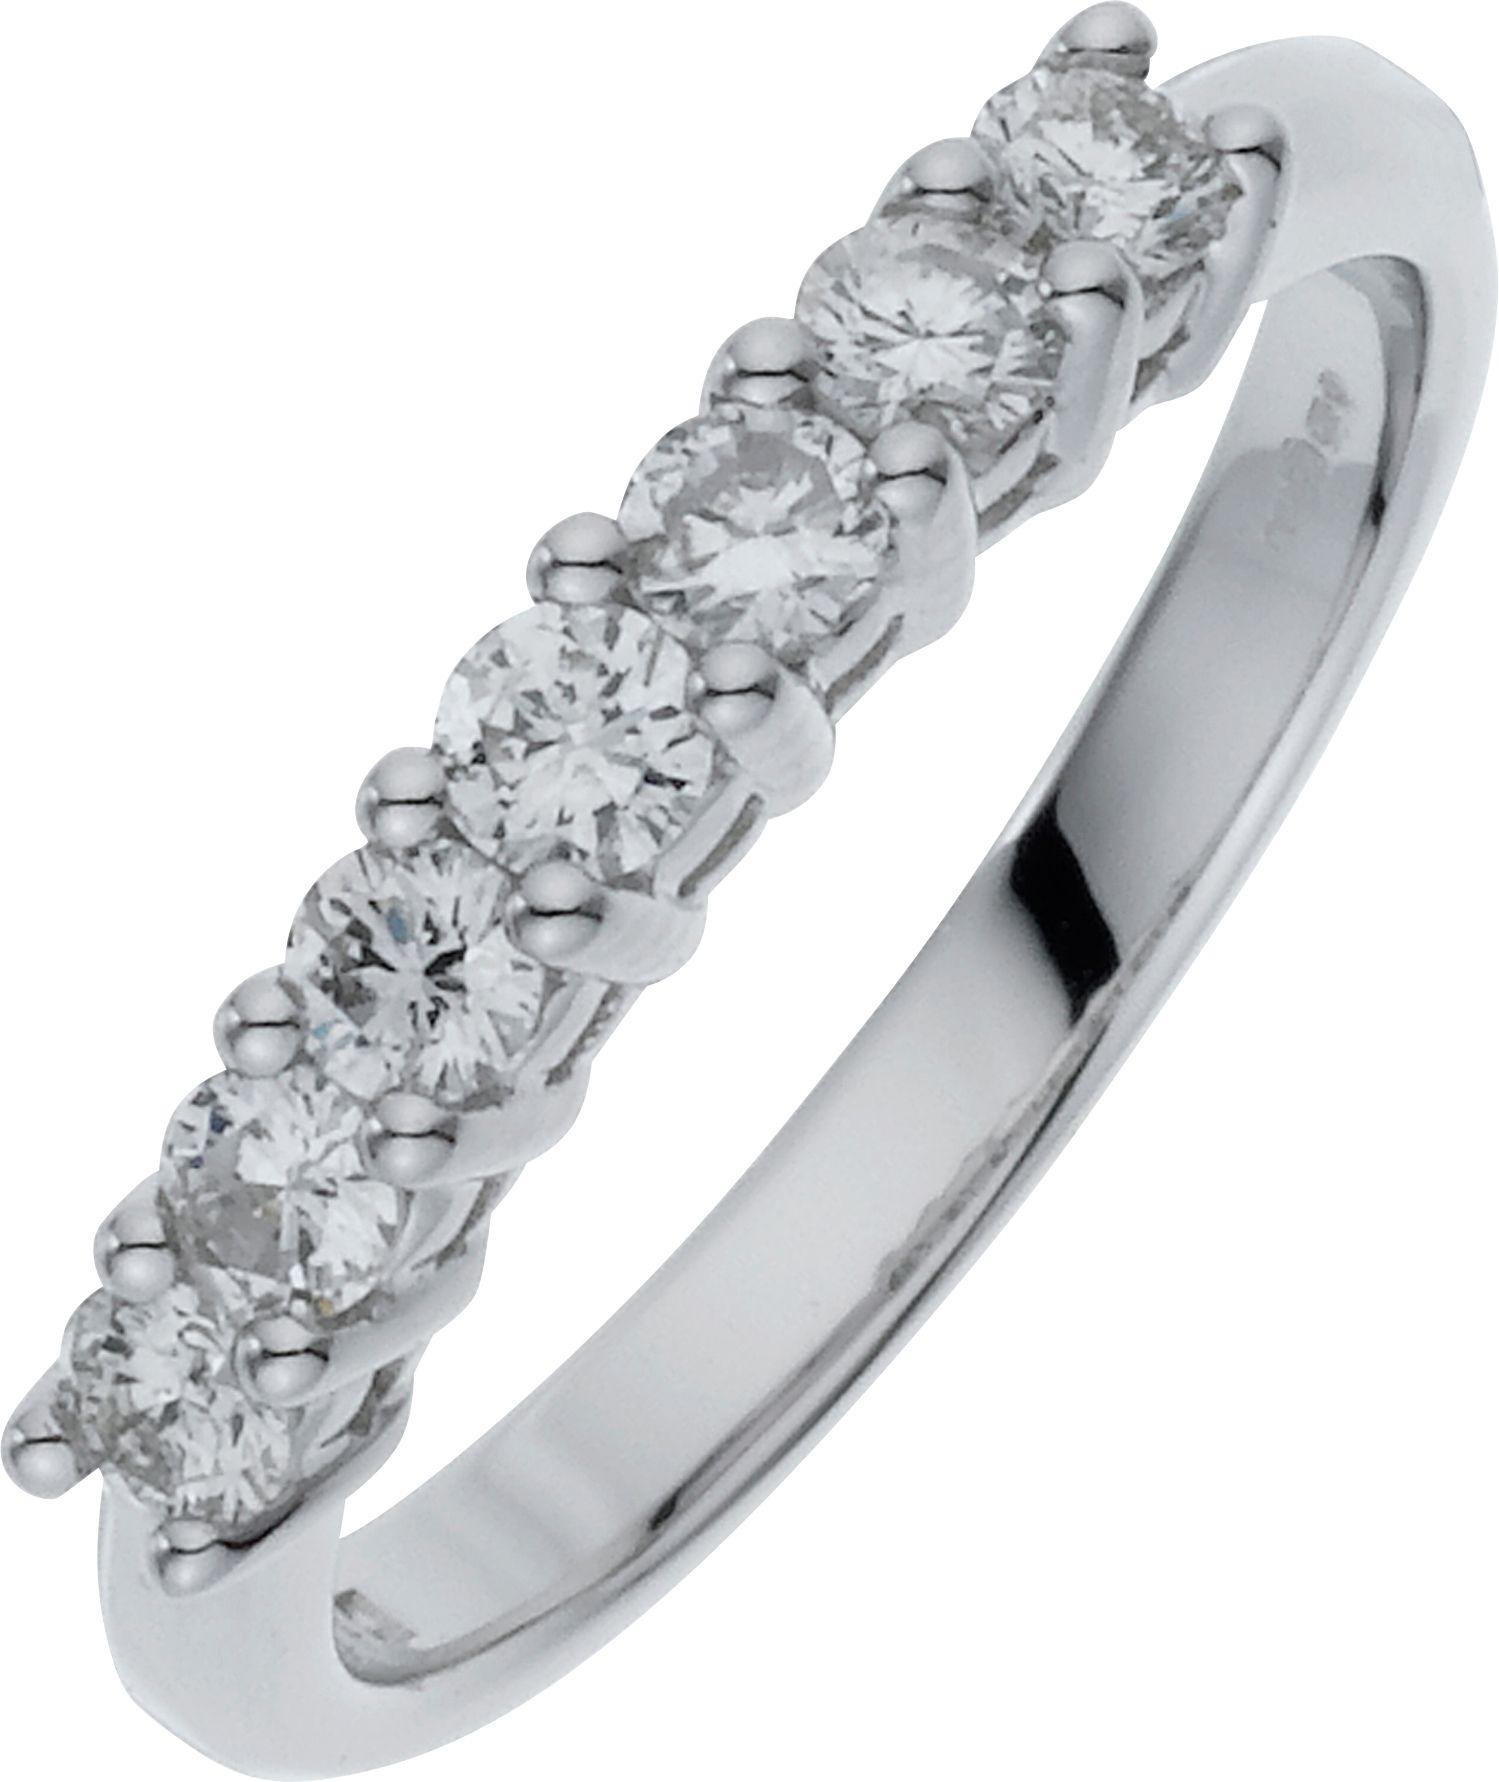 Made For You - 9 Carat White Gold 7 Stone Eternity Ring - Size U